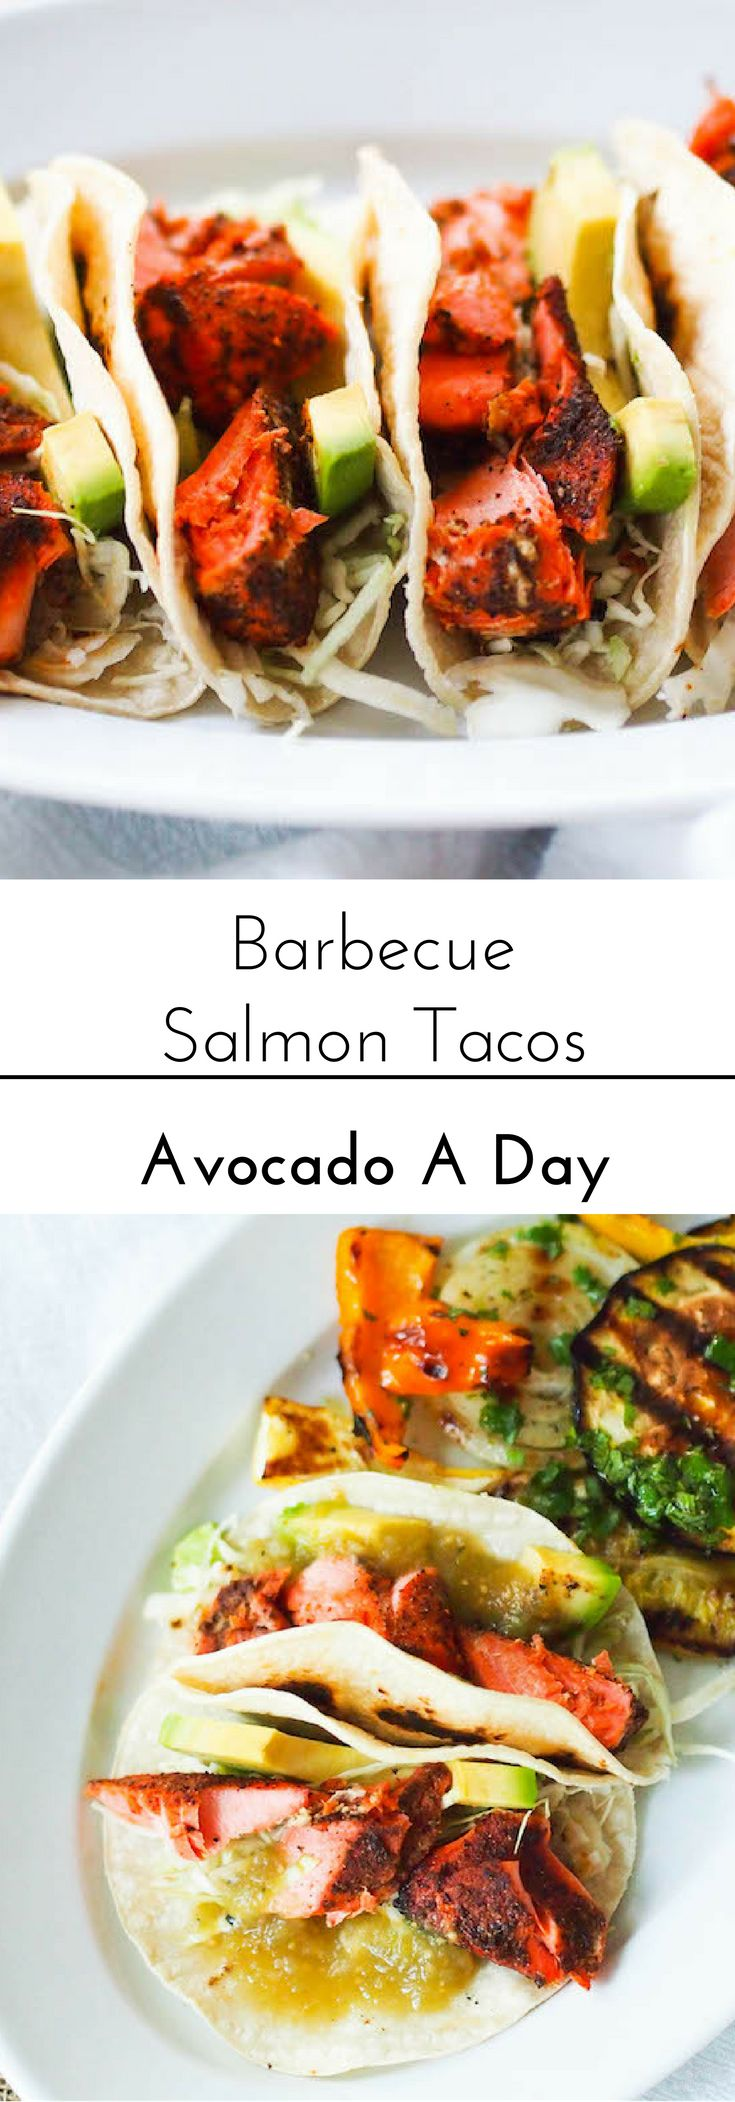 These easy fish tacos get a kick from barbecue spiced salmon! Serve with salsa verde and slaw!